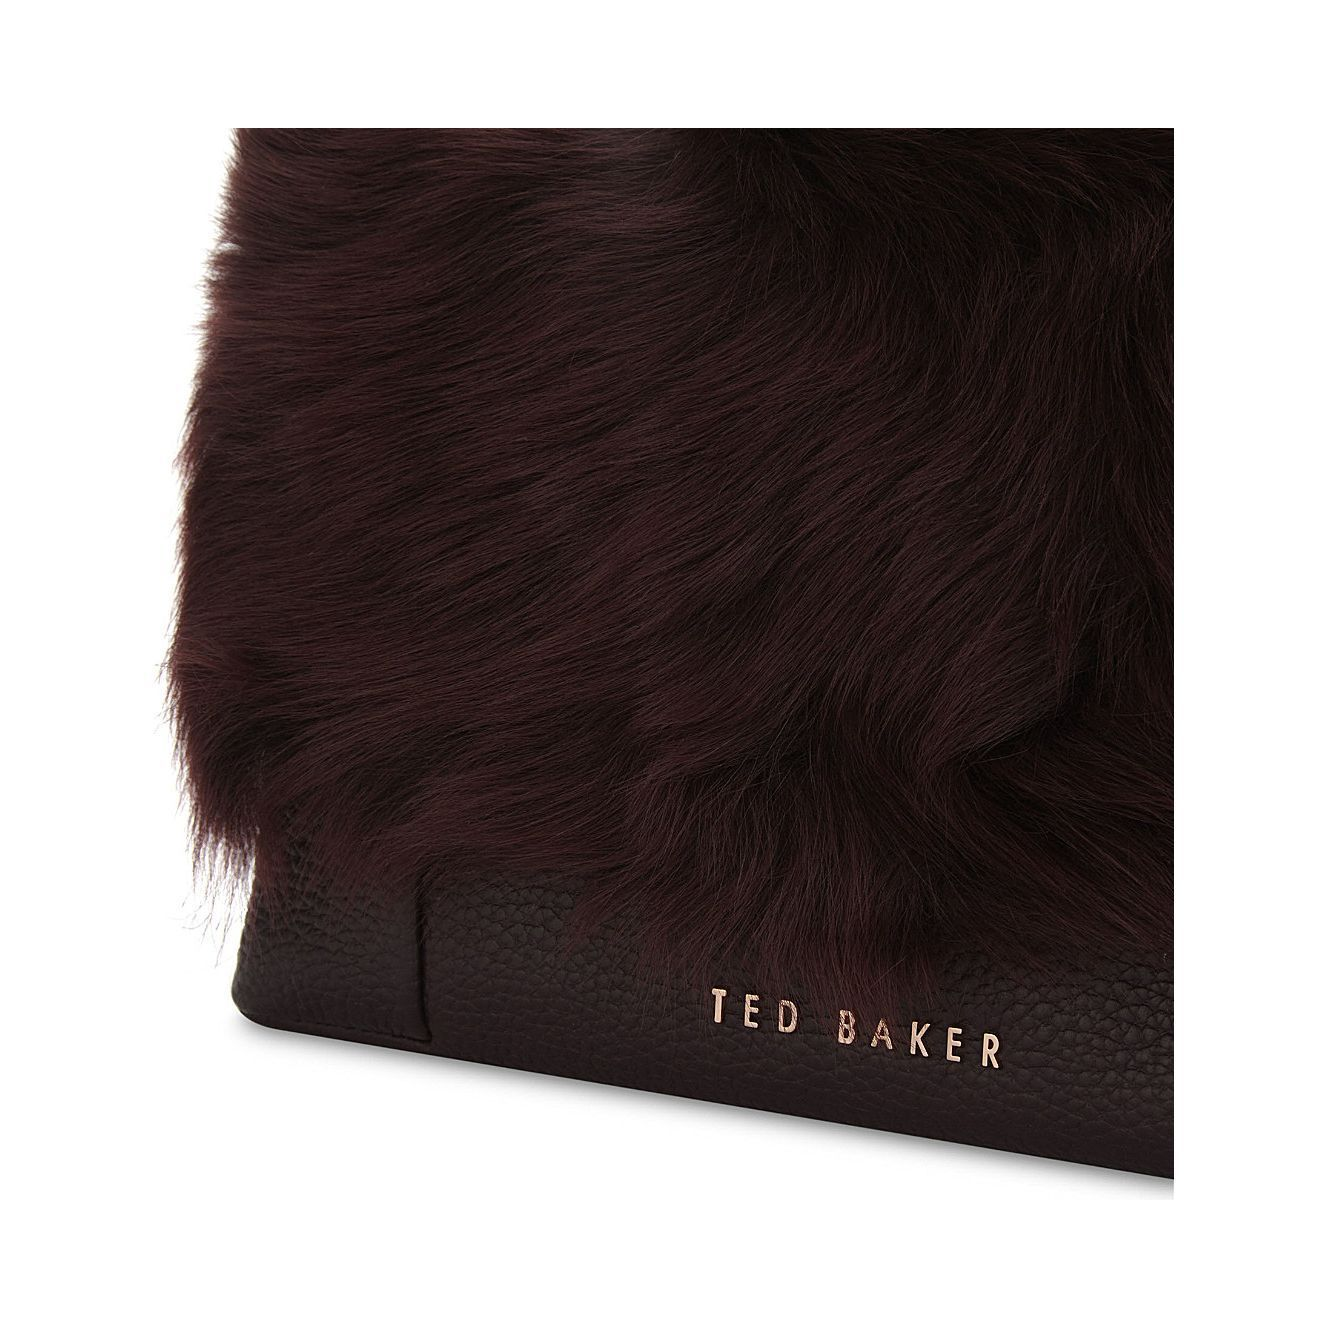 TED BAKER Fuzzi シアリング♪斜め掛けバッグ【関税・送料込み】